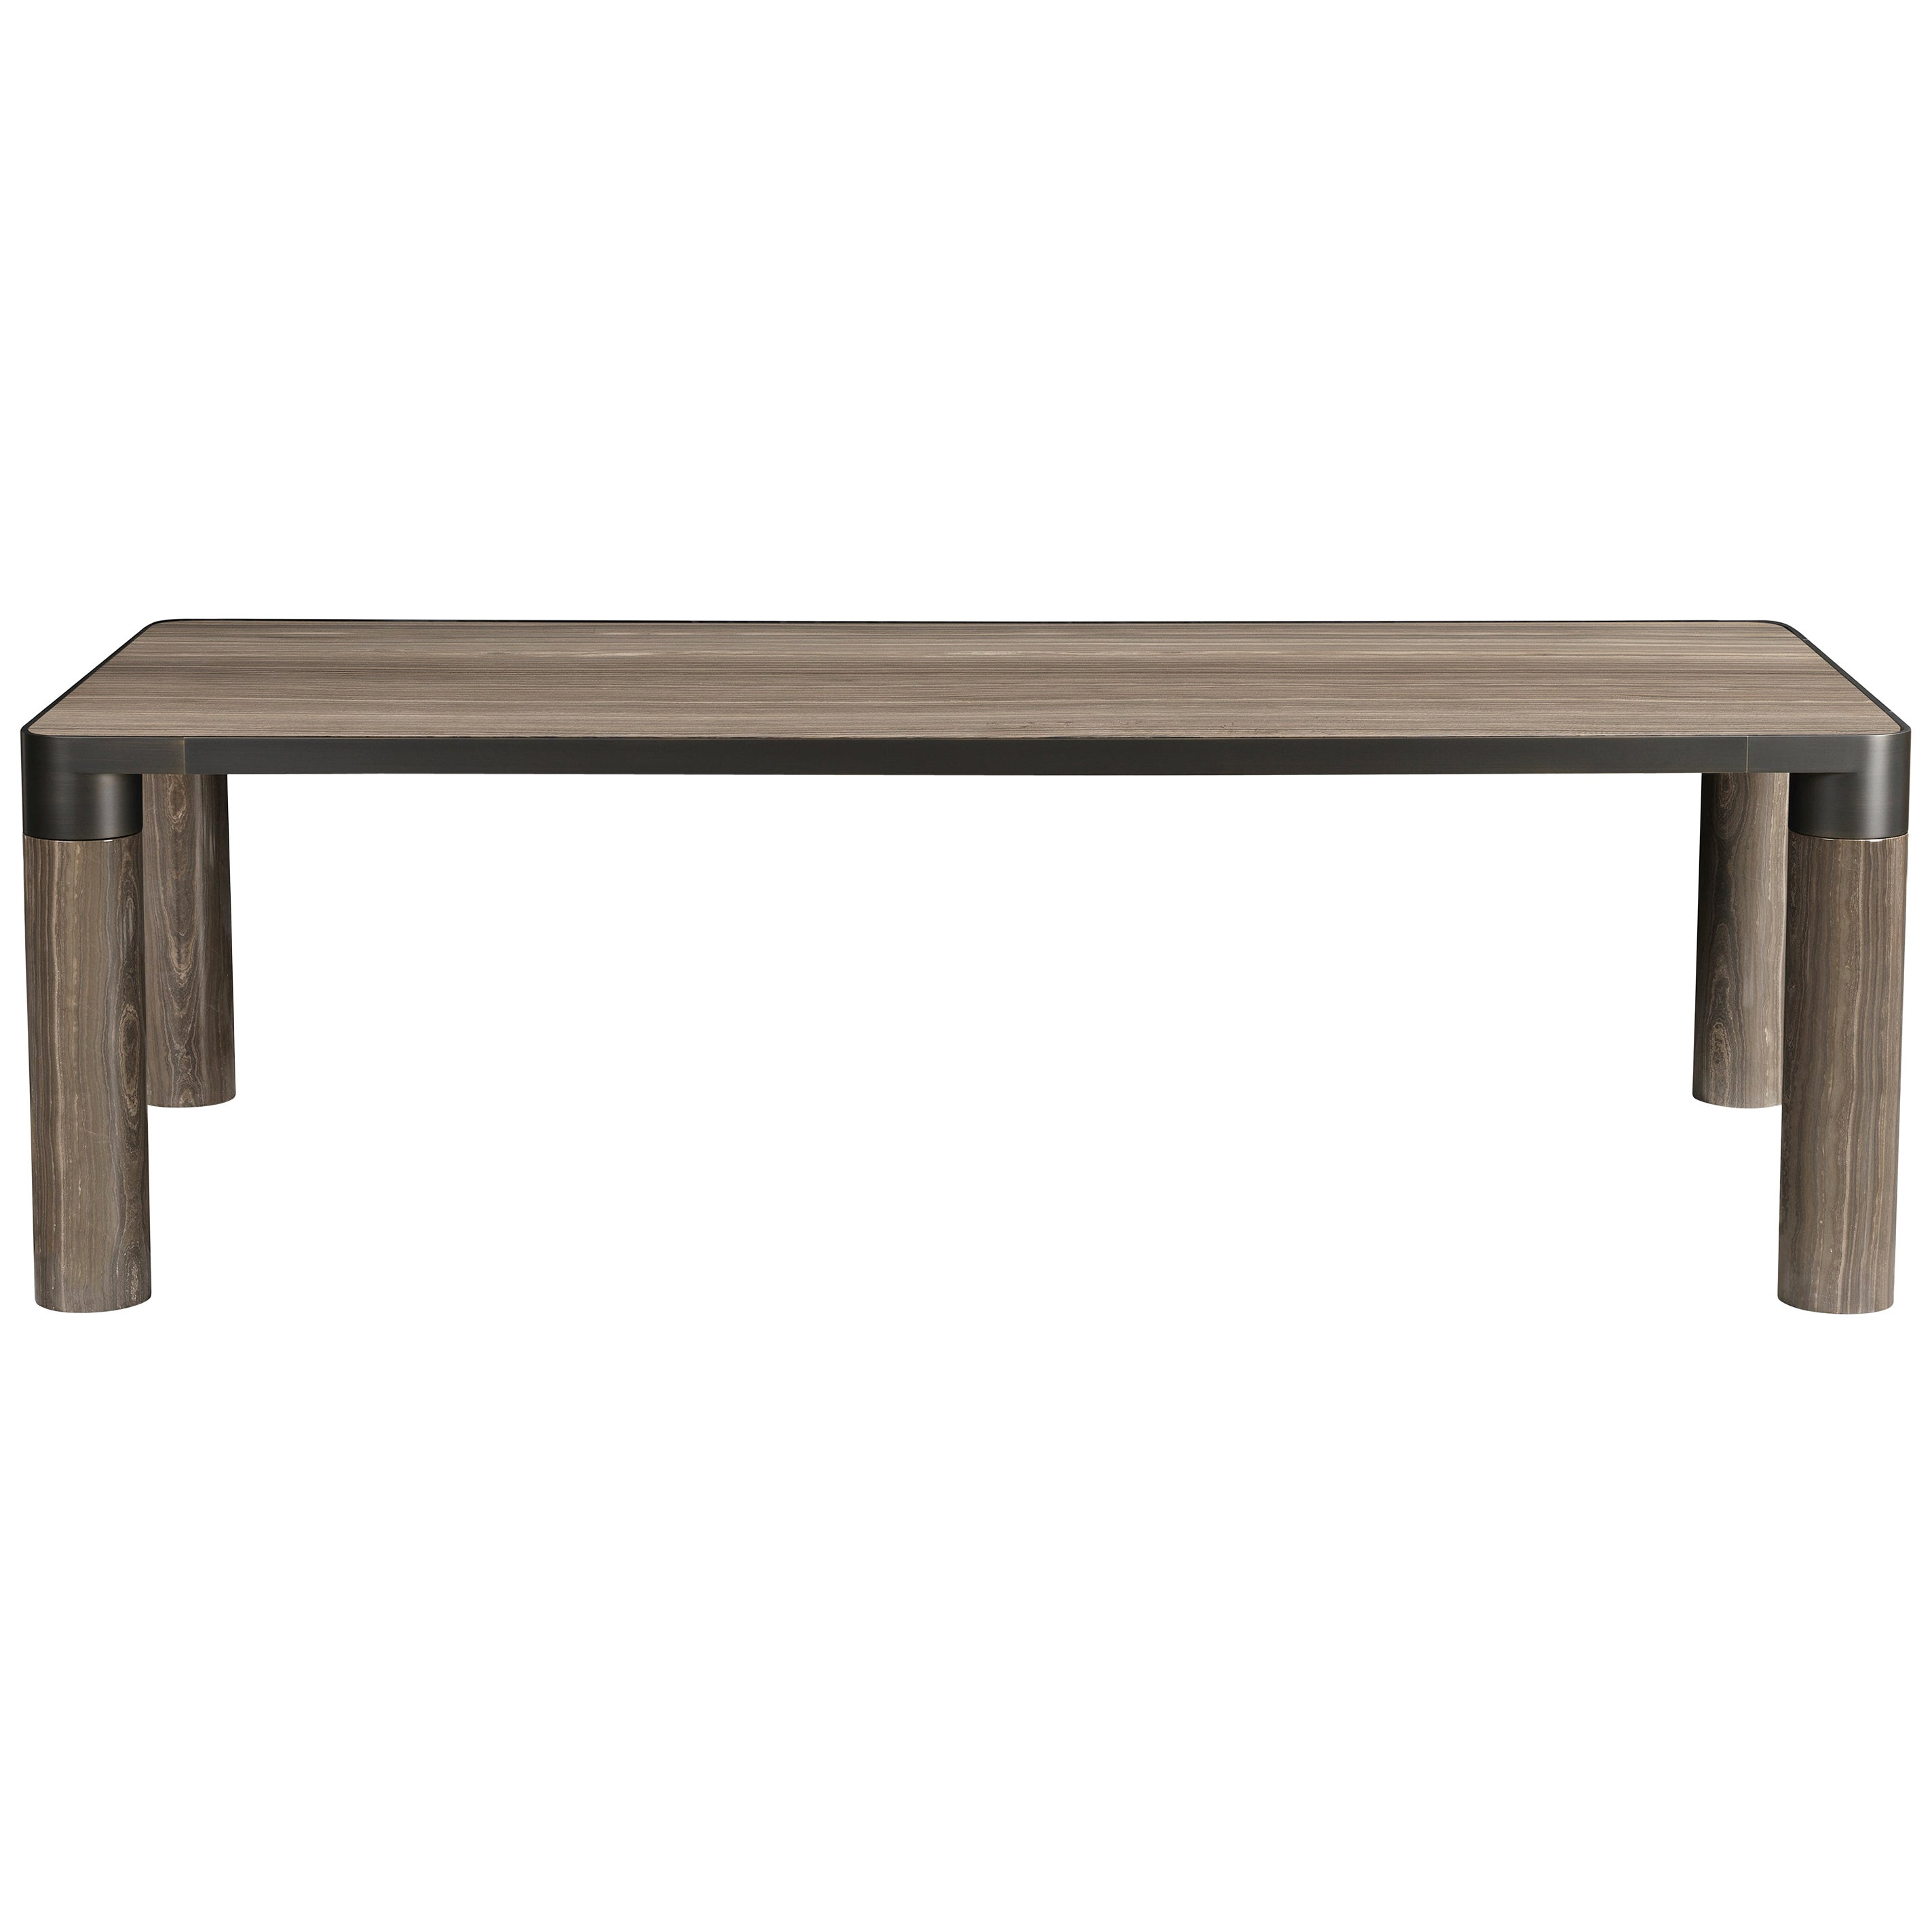 Ghidini 1961 Bold Medium Table in Eramosa Marble Top & Black Gold, E.Giovannoni